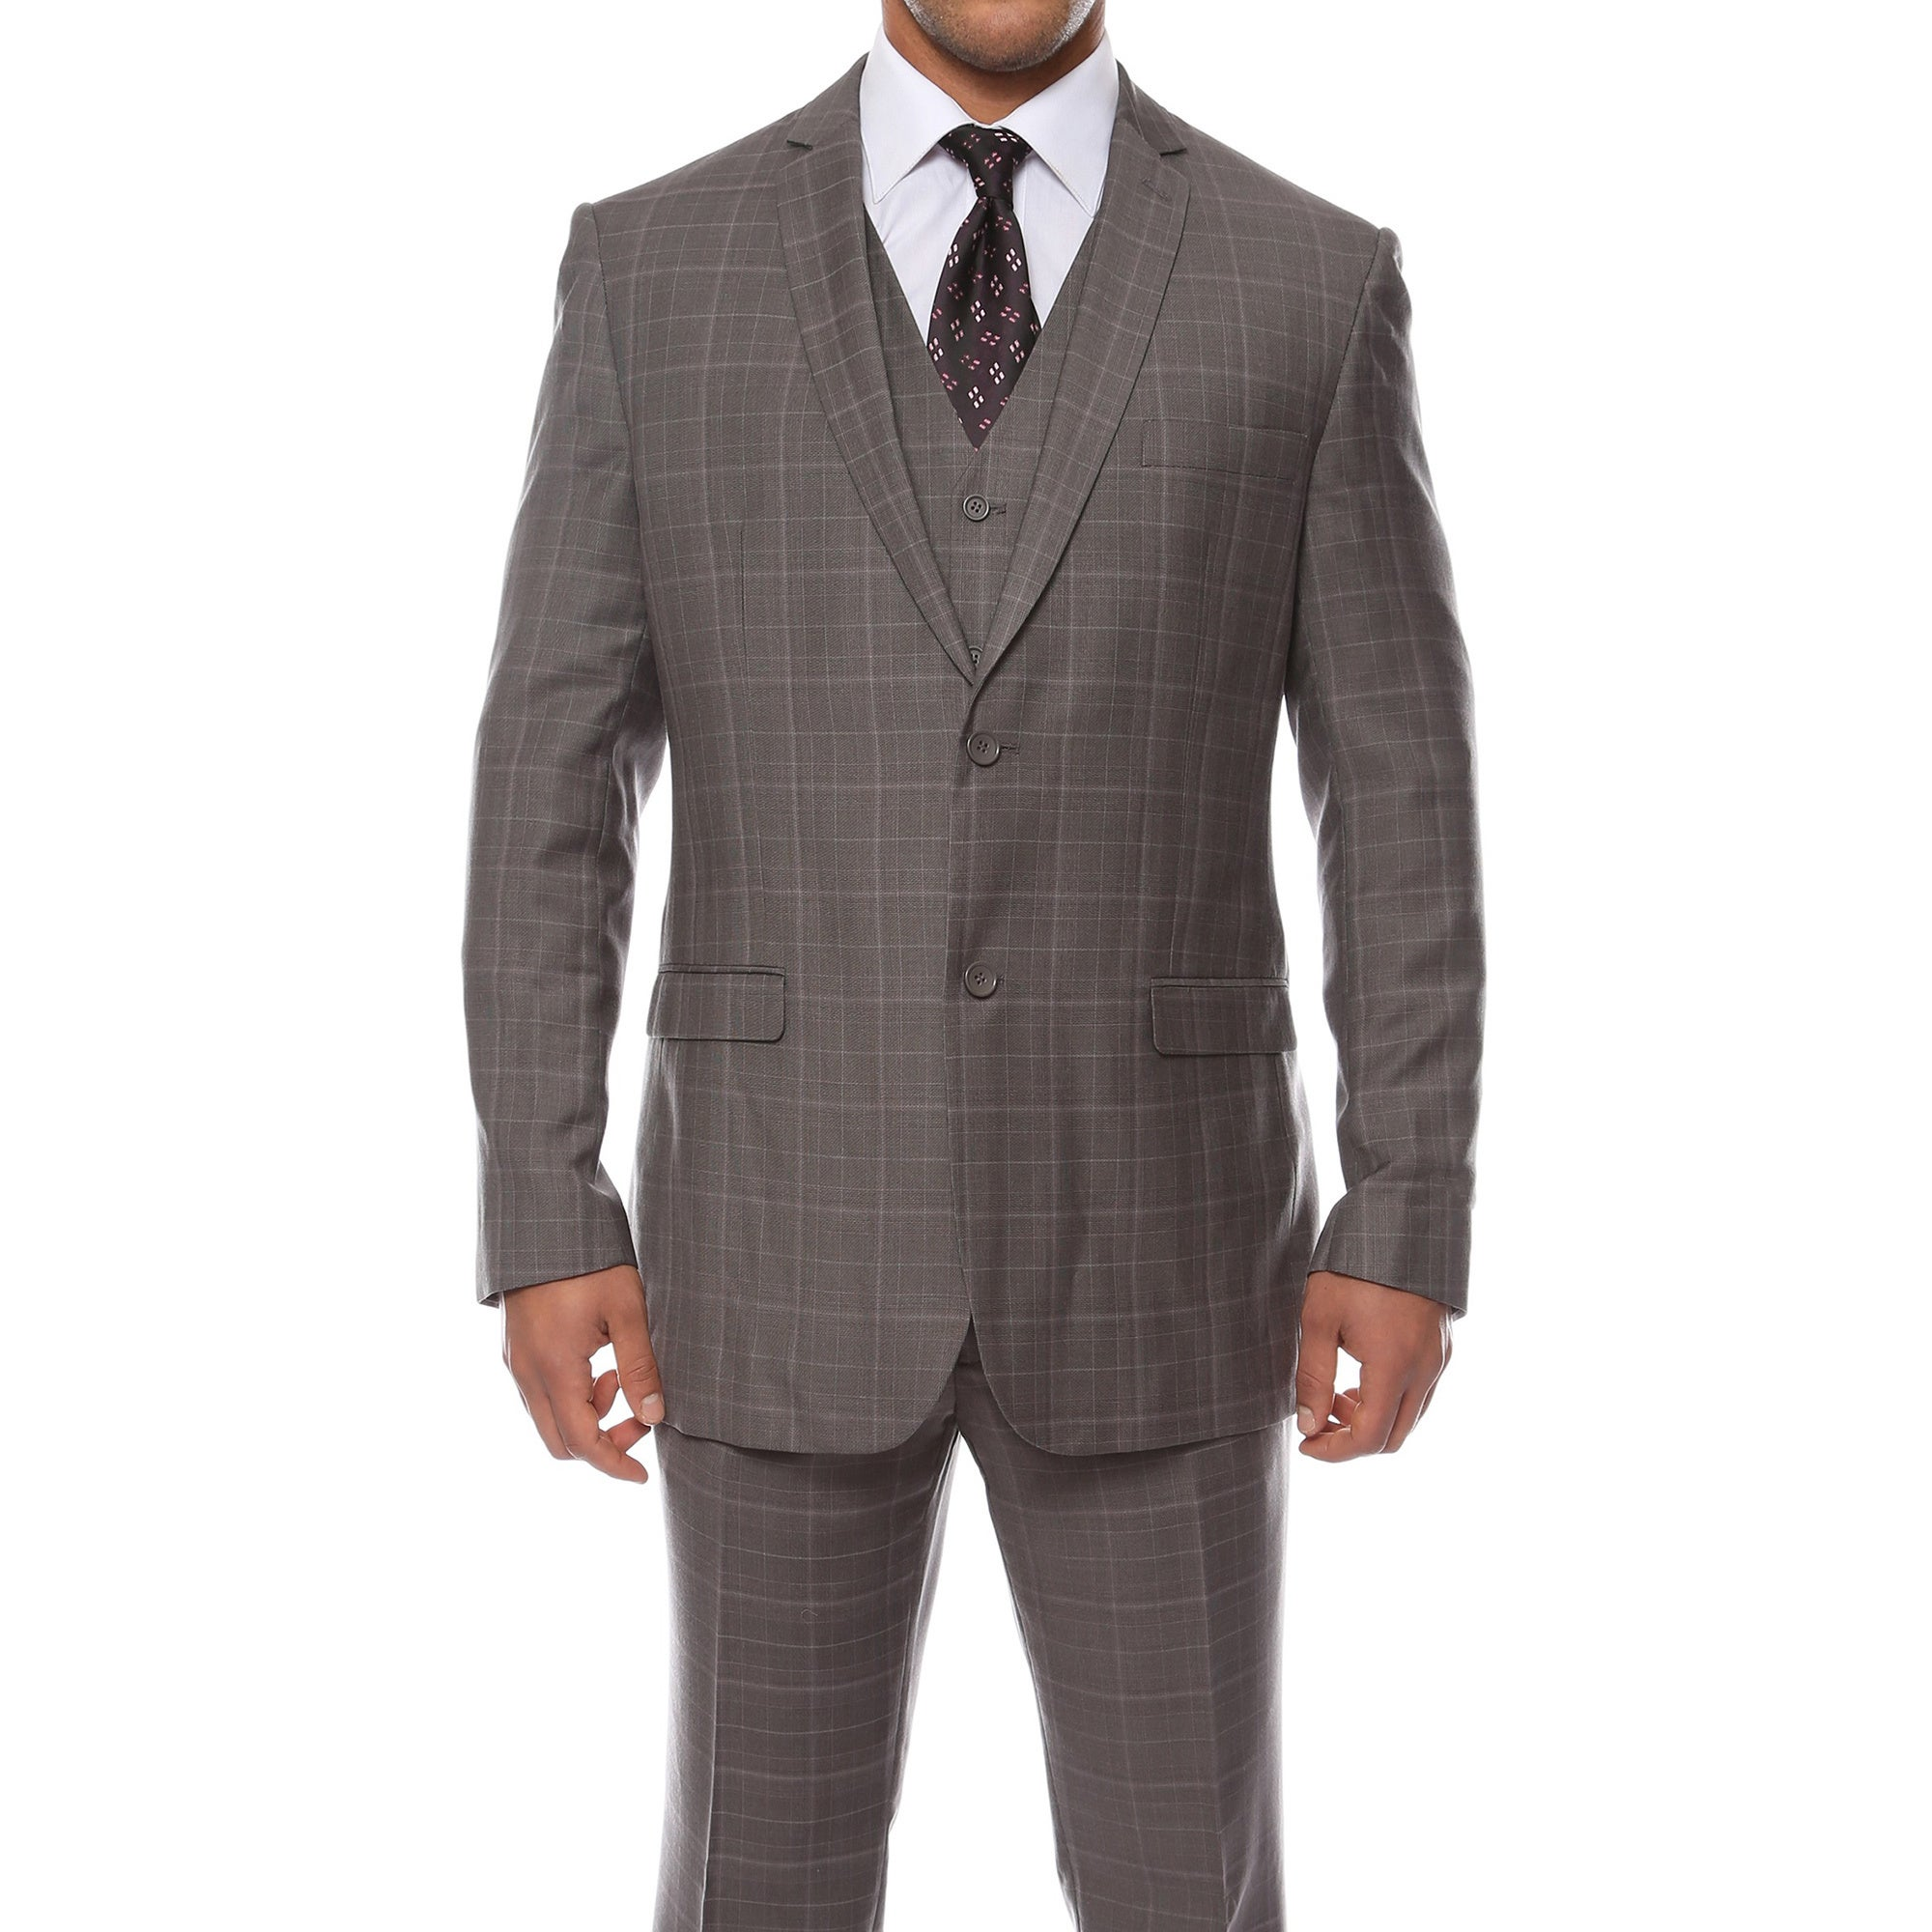 world-wide renown street price quality Zonettie by Ferrecci Men's Custom Slim Fit Charcoal Grey Plaid 3-piece  Vested Suit